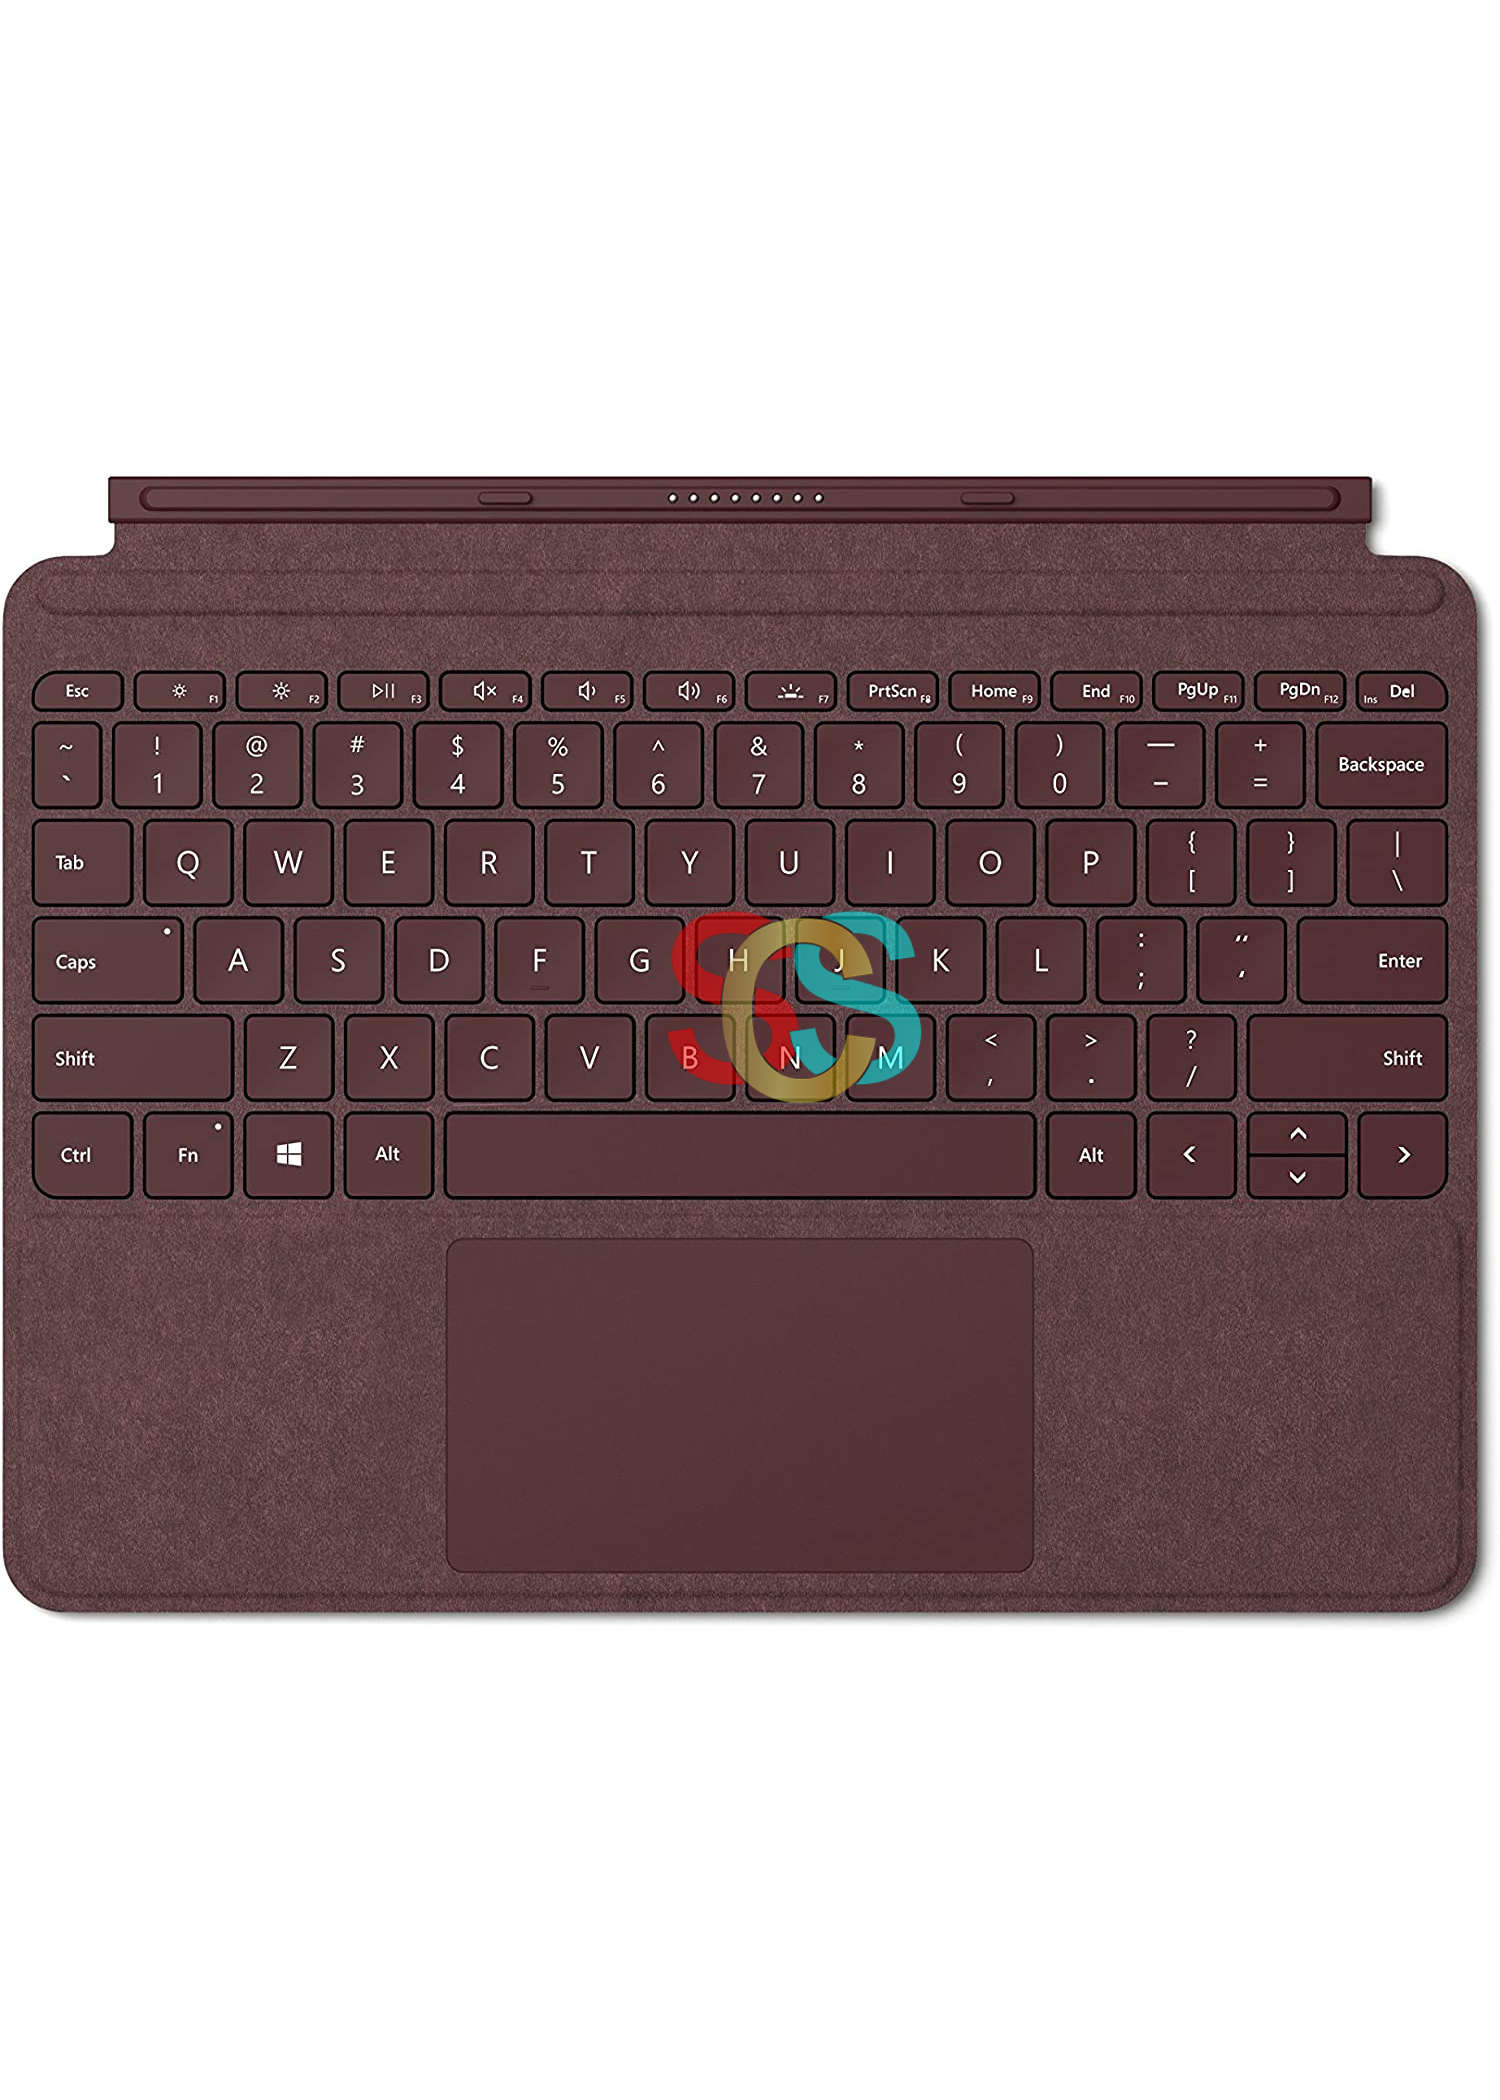 Microsoft Keyboard:-Buy Microsoft Surface Go Burgundy Signature Type Cover best Price in bd at samanta Computer.Model – Microsoft Surface Go,Color – Burgundy